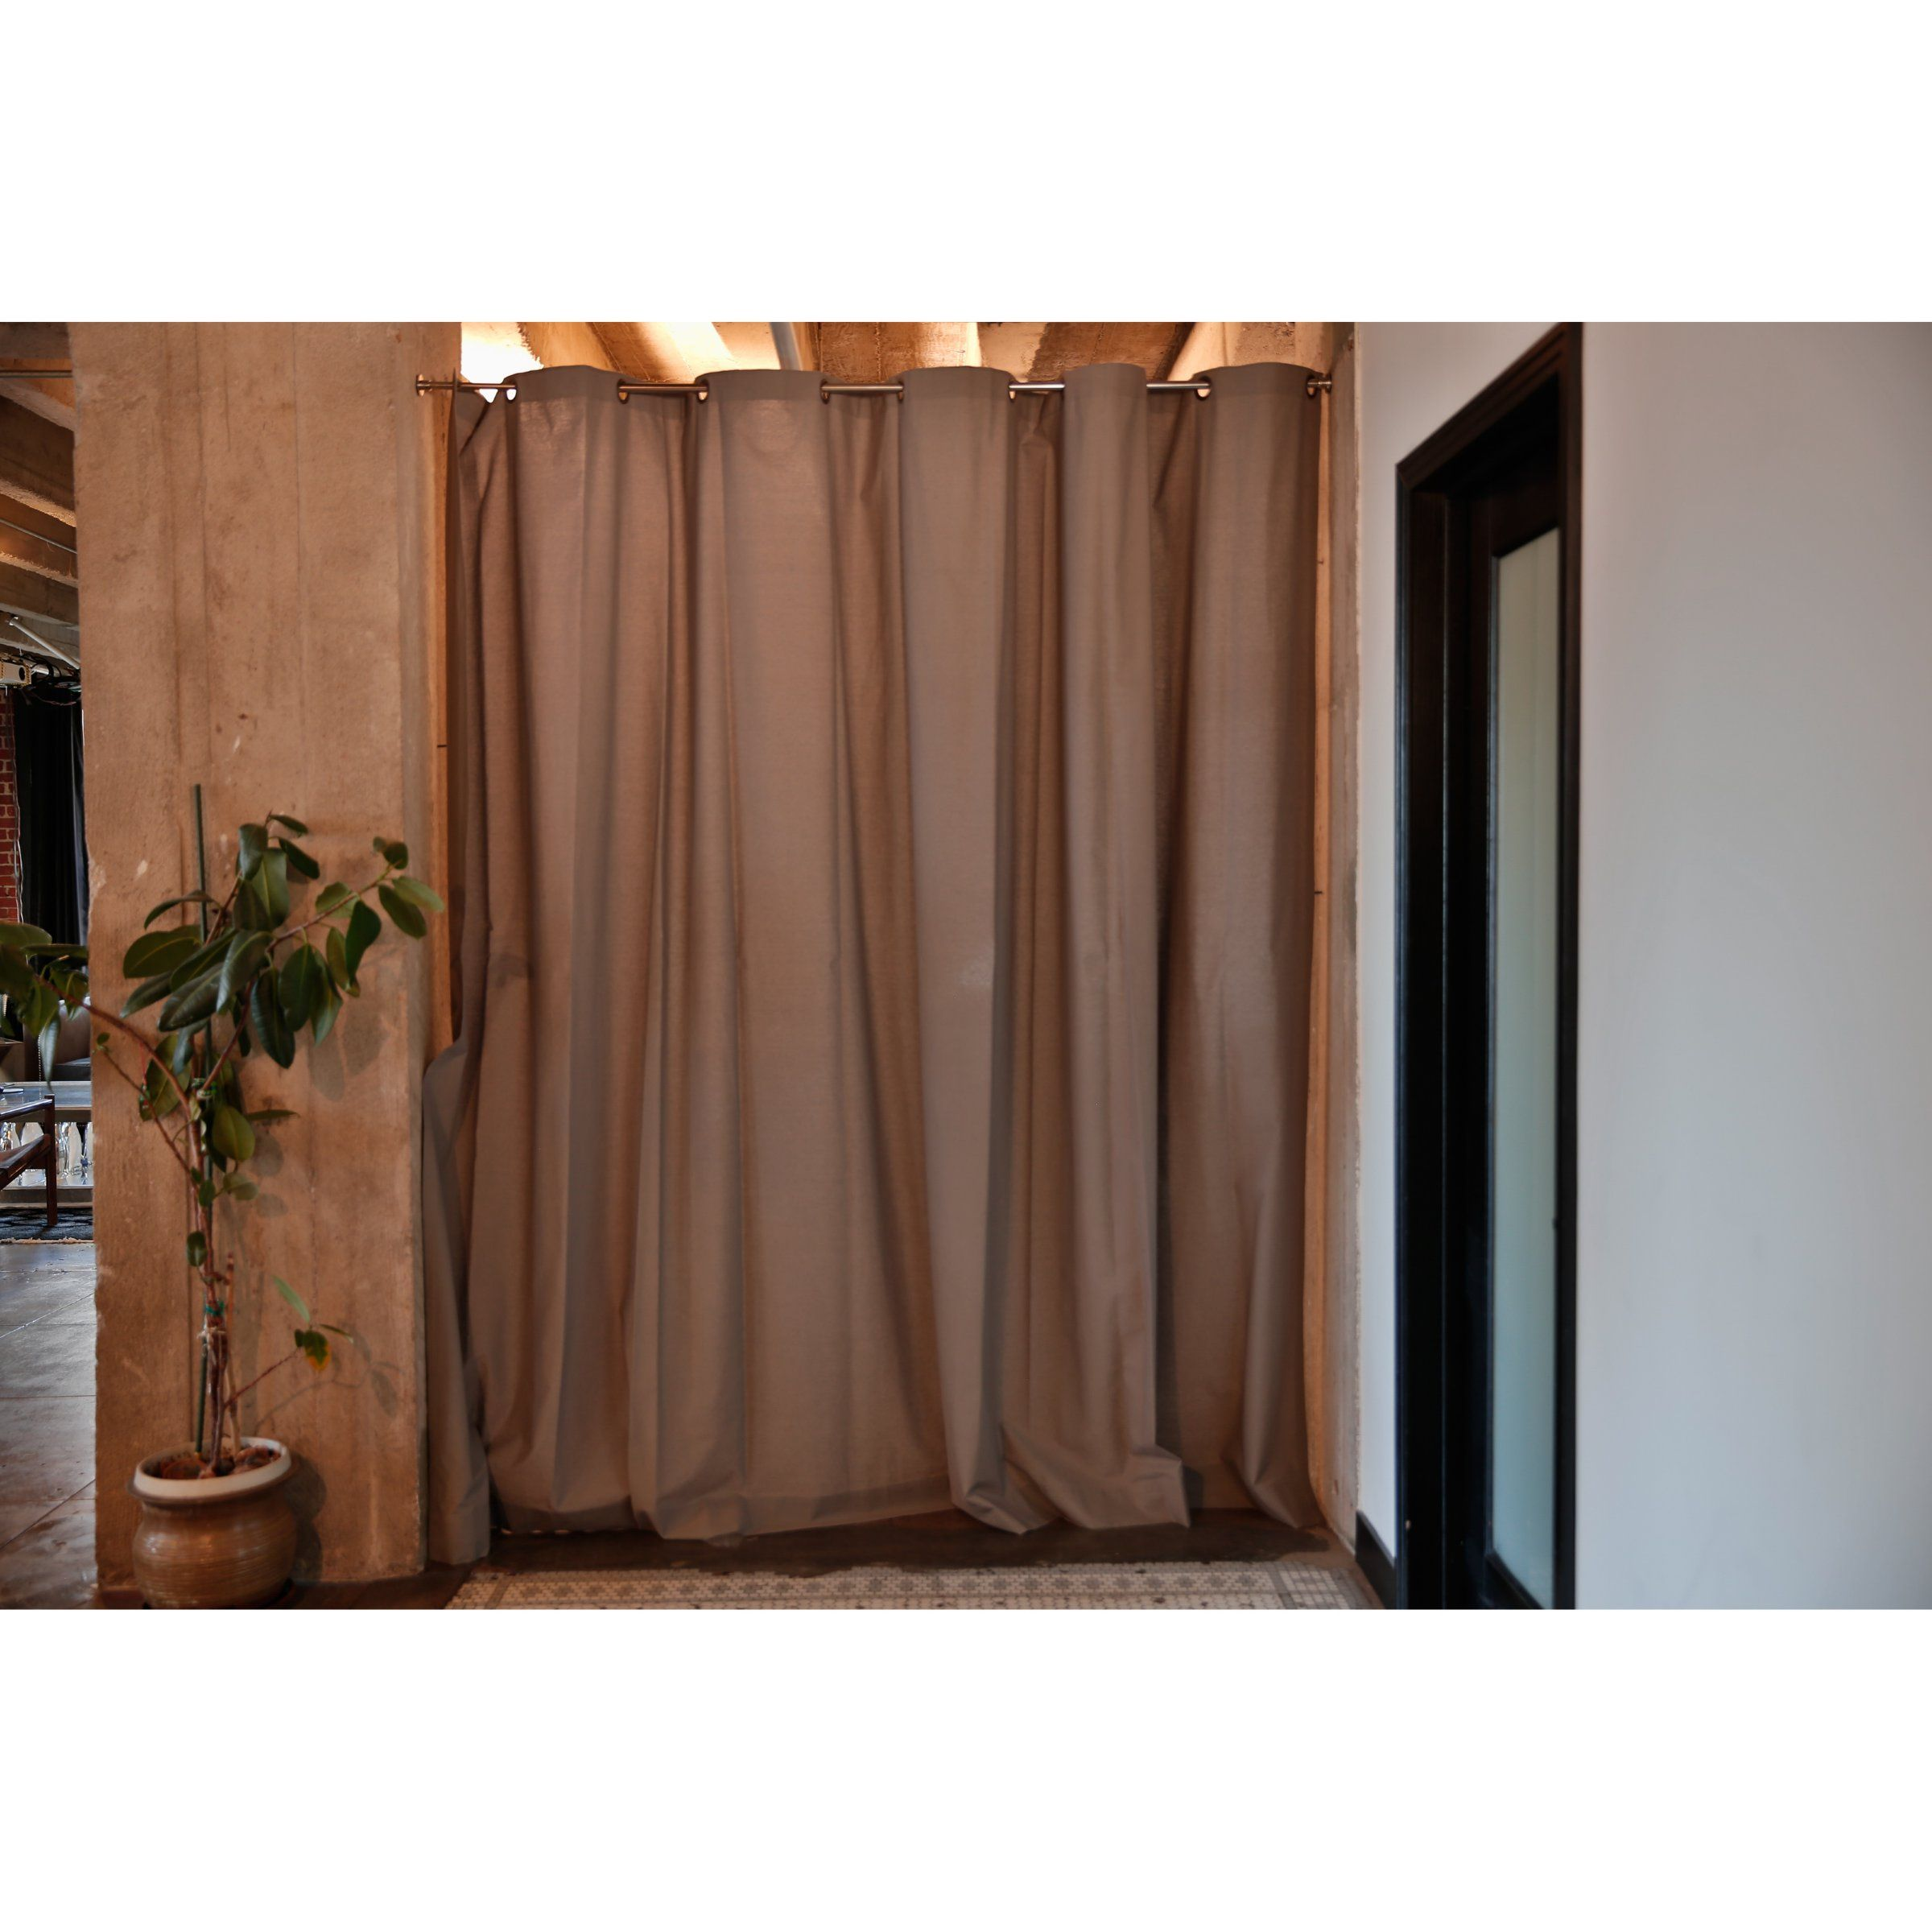 RoomDividersNow Khaki Fabric Curtain Room Divider Room Dividers at